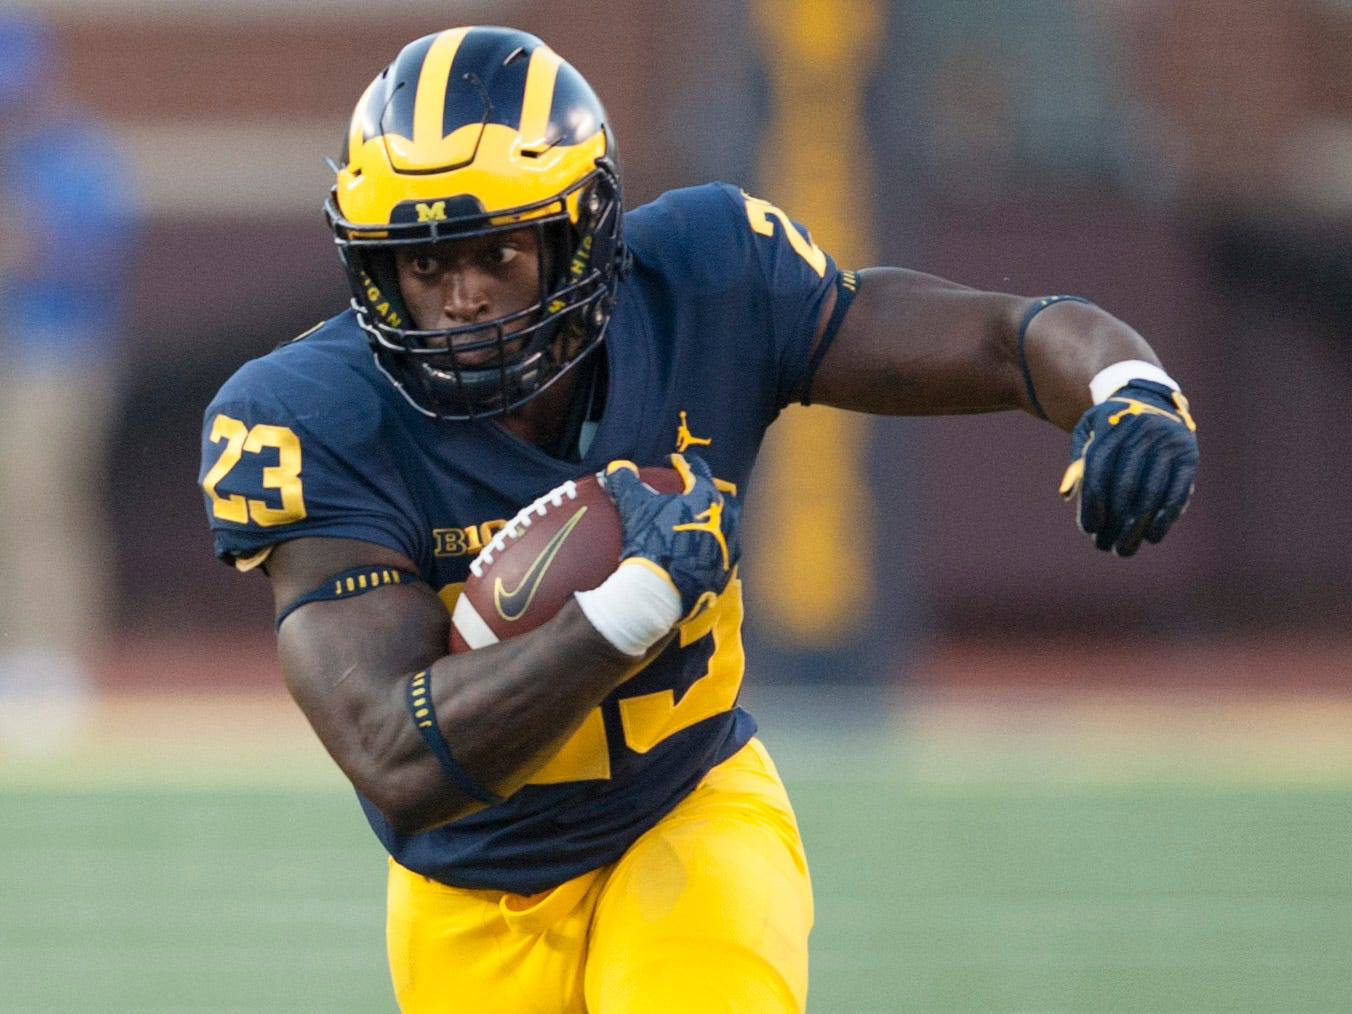 Michigan running back O'Maury Samuels runs the ball in the second half. Samuels rushed for 22 yards on two carries.